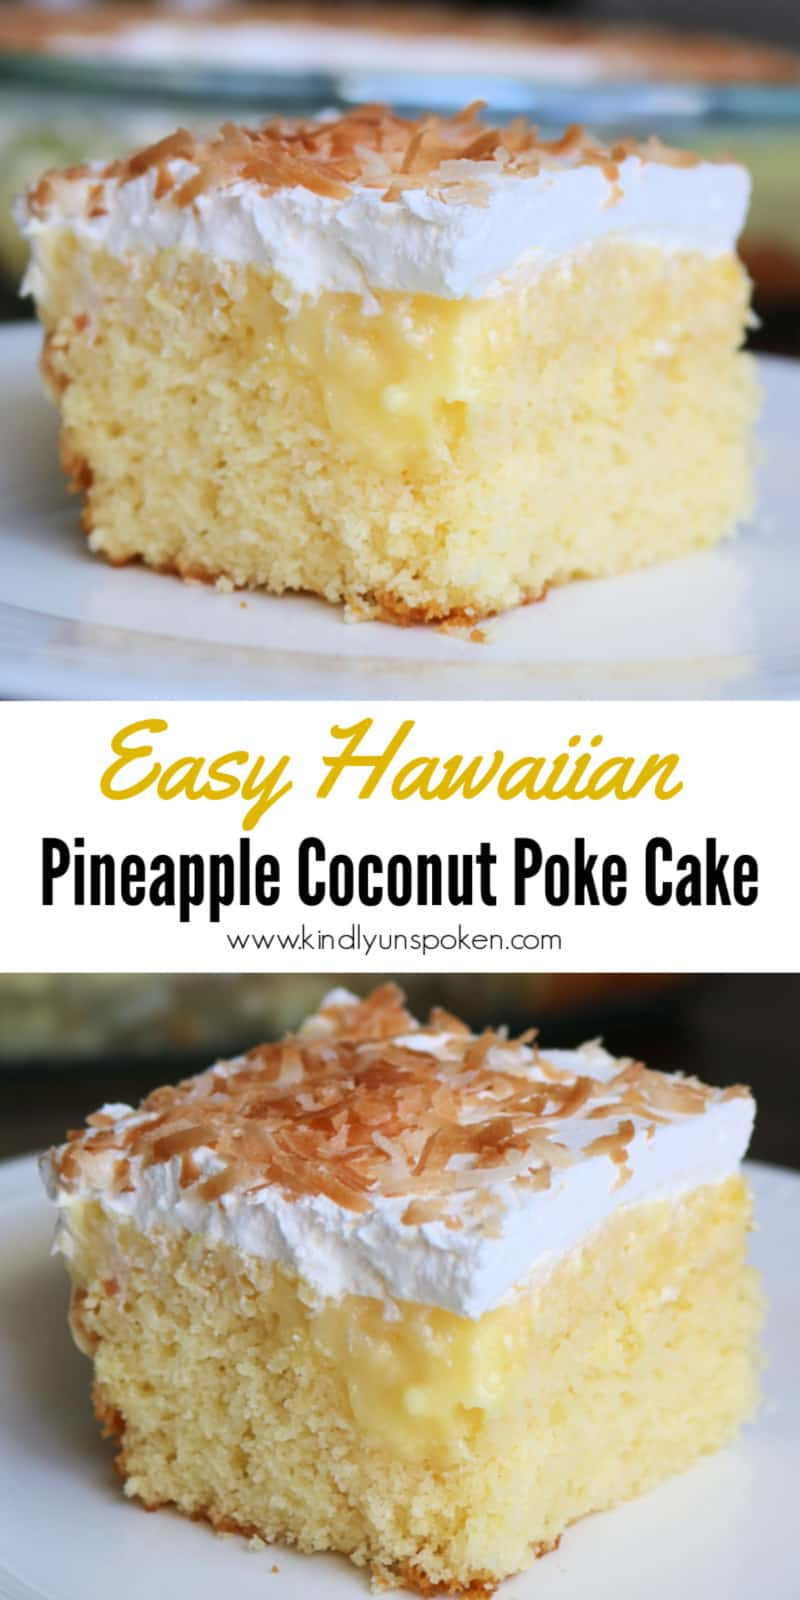 Try my Easy Hawaiian Pineapple Coconut Poke Cake for a delicious, tropical dessert! All you need is a boxed cake mix, crushed pineapple, coconut cream and vanilla pudding, whipped topping, and toasted shredded coconut. This easy poke cake is perfect for potlucks and parties! #pokecake #hawaiianpokecake #pineapplepokecake #coconutpokecake #cake